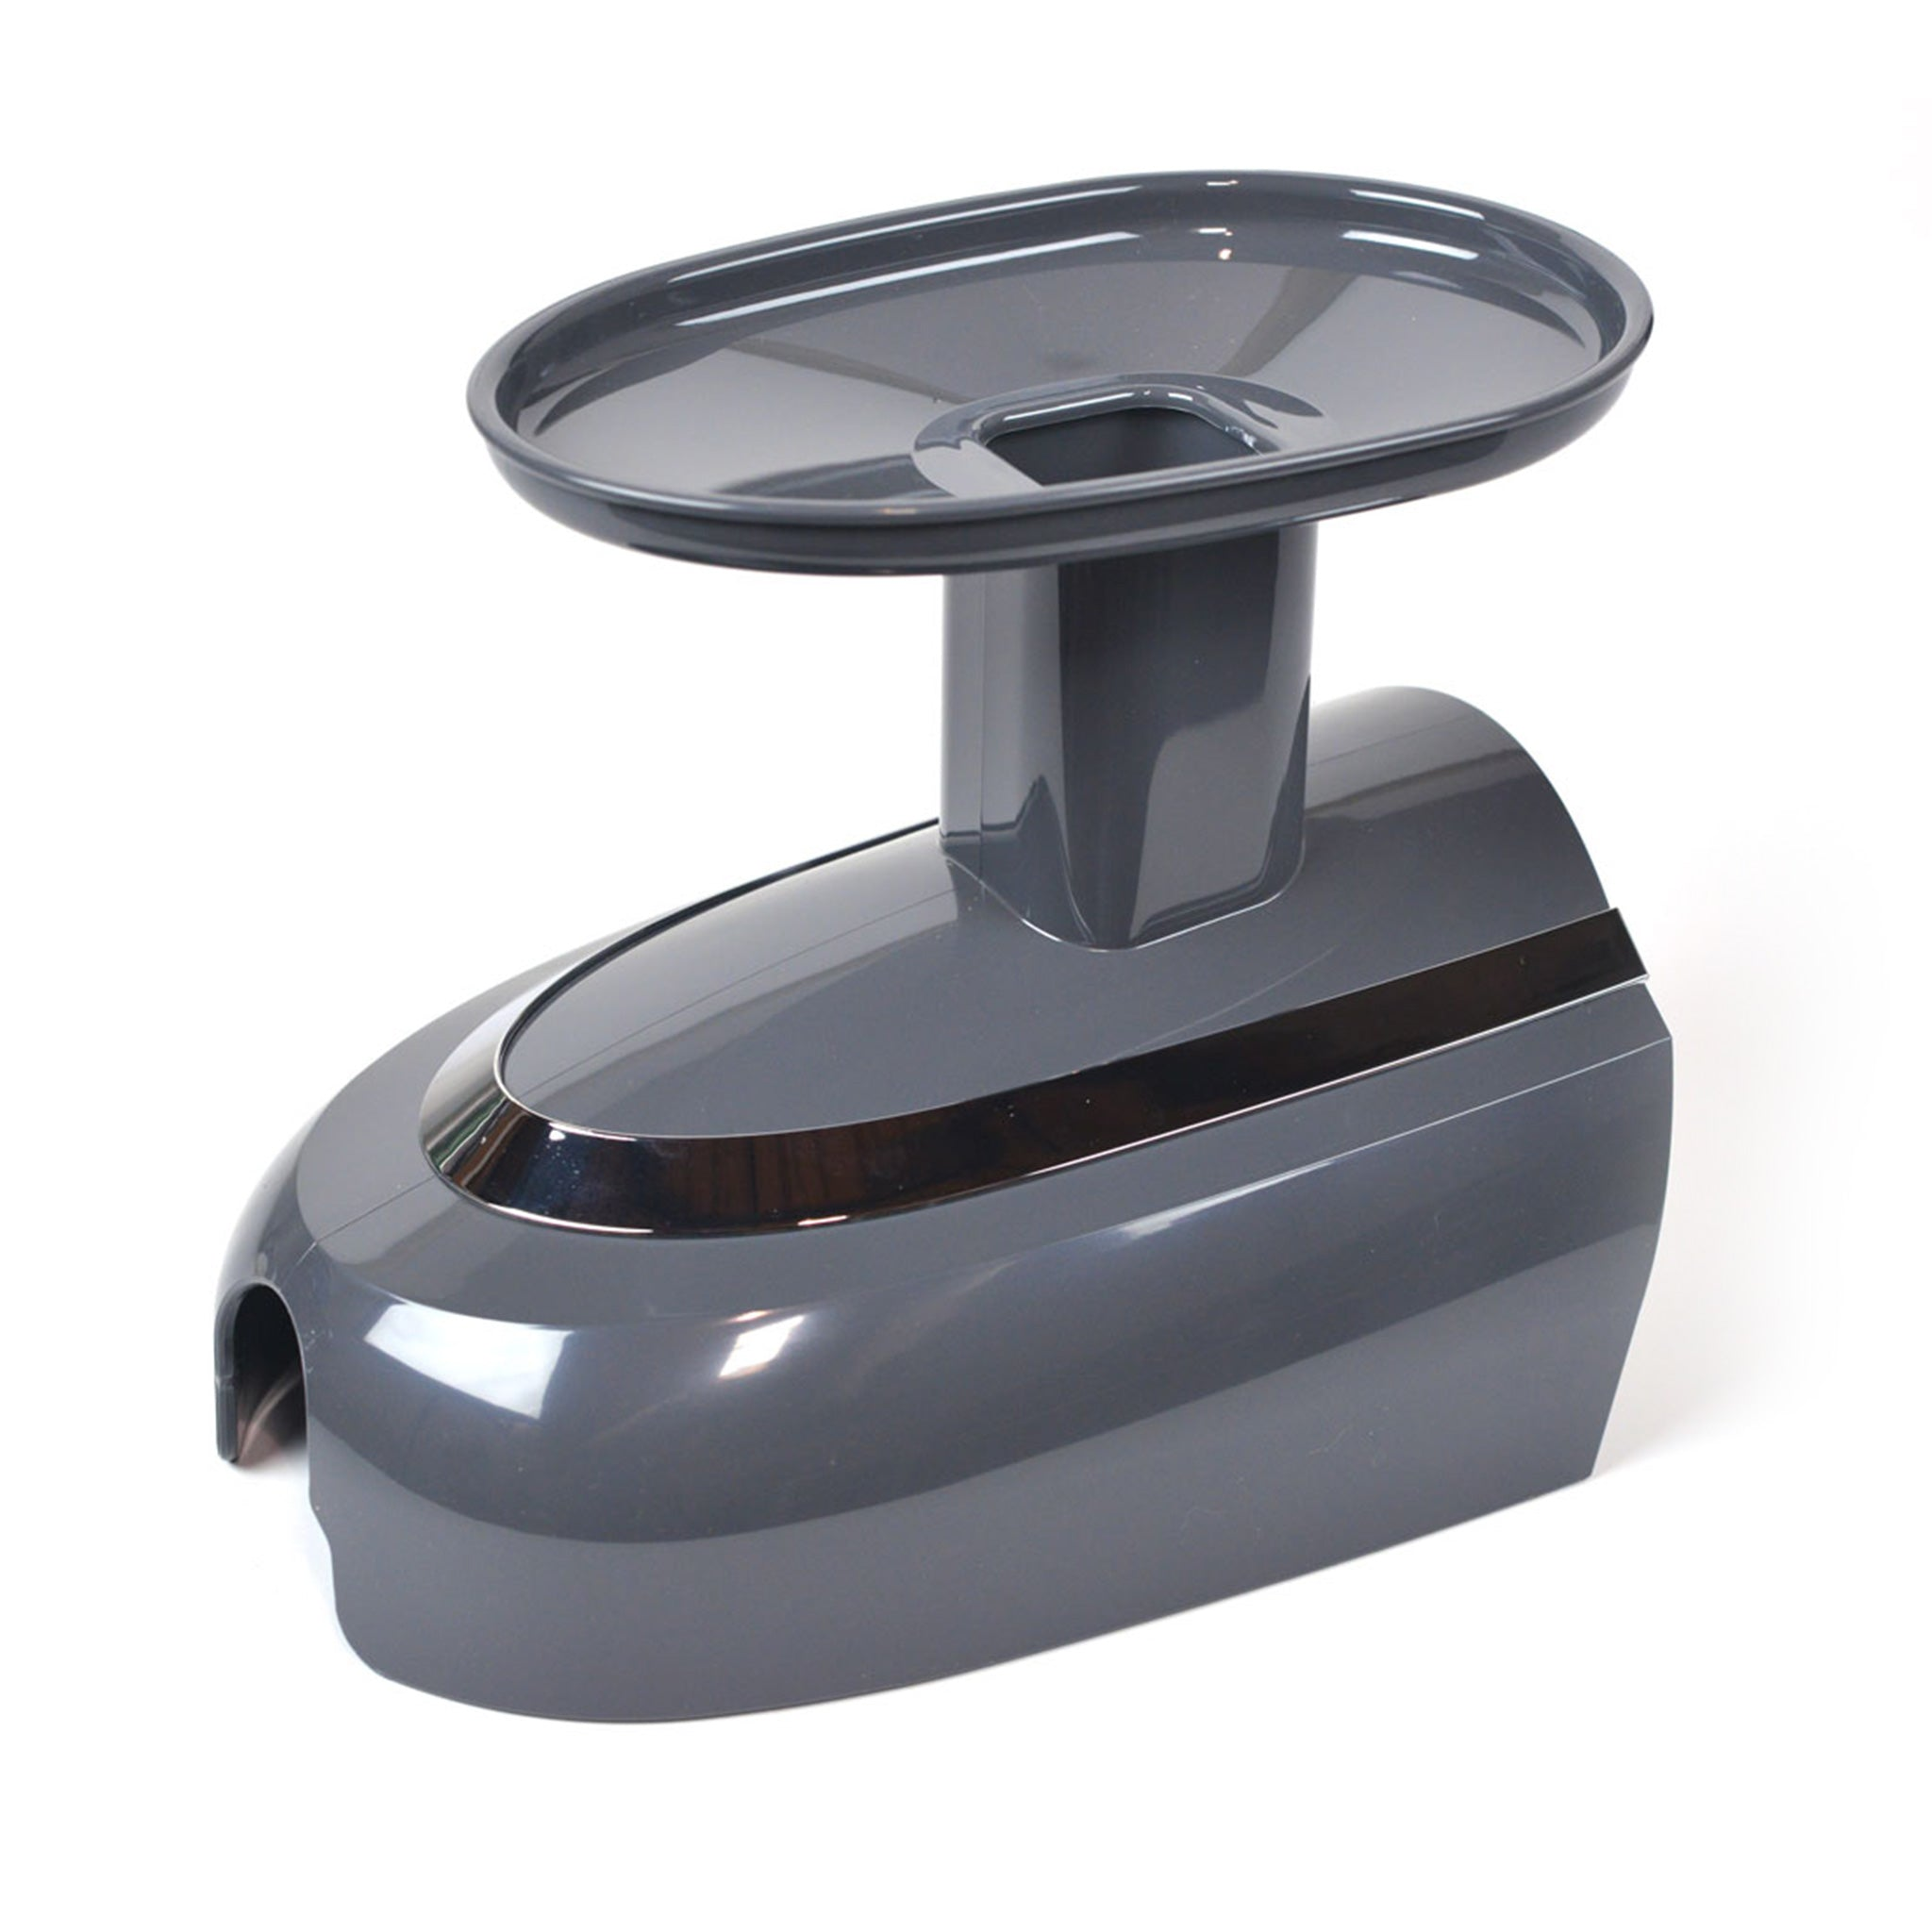 The Gray Safety Hood Assembly is compatible with Greenstar® Pro in Gray (GS-P502).